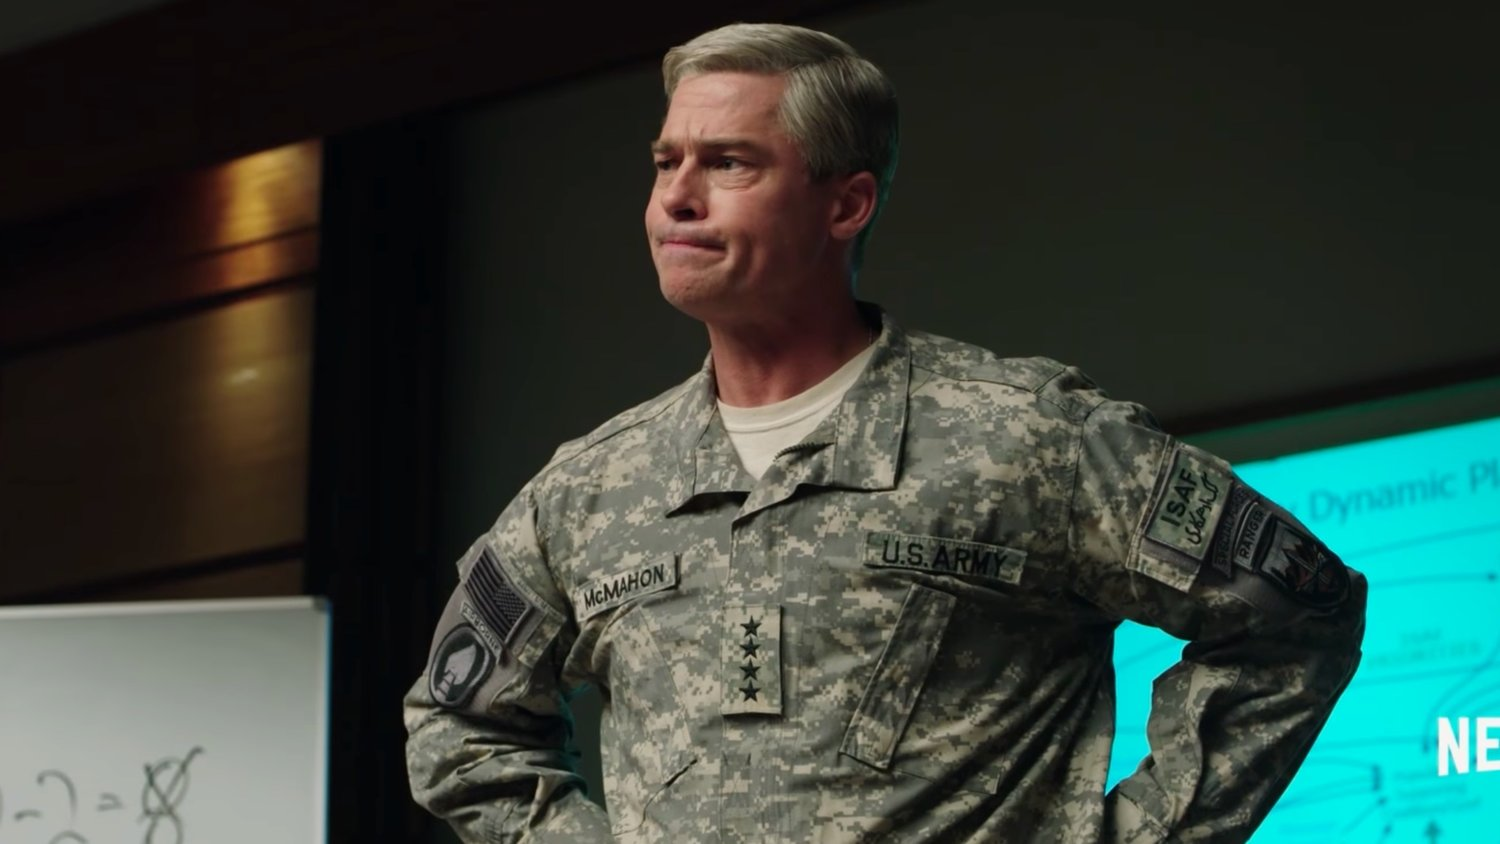 Brad Pitt is Ready for Battle in the New Trailer for Netflix's WAR MACHINE